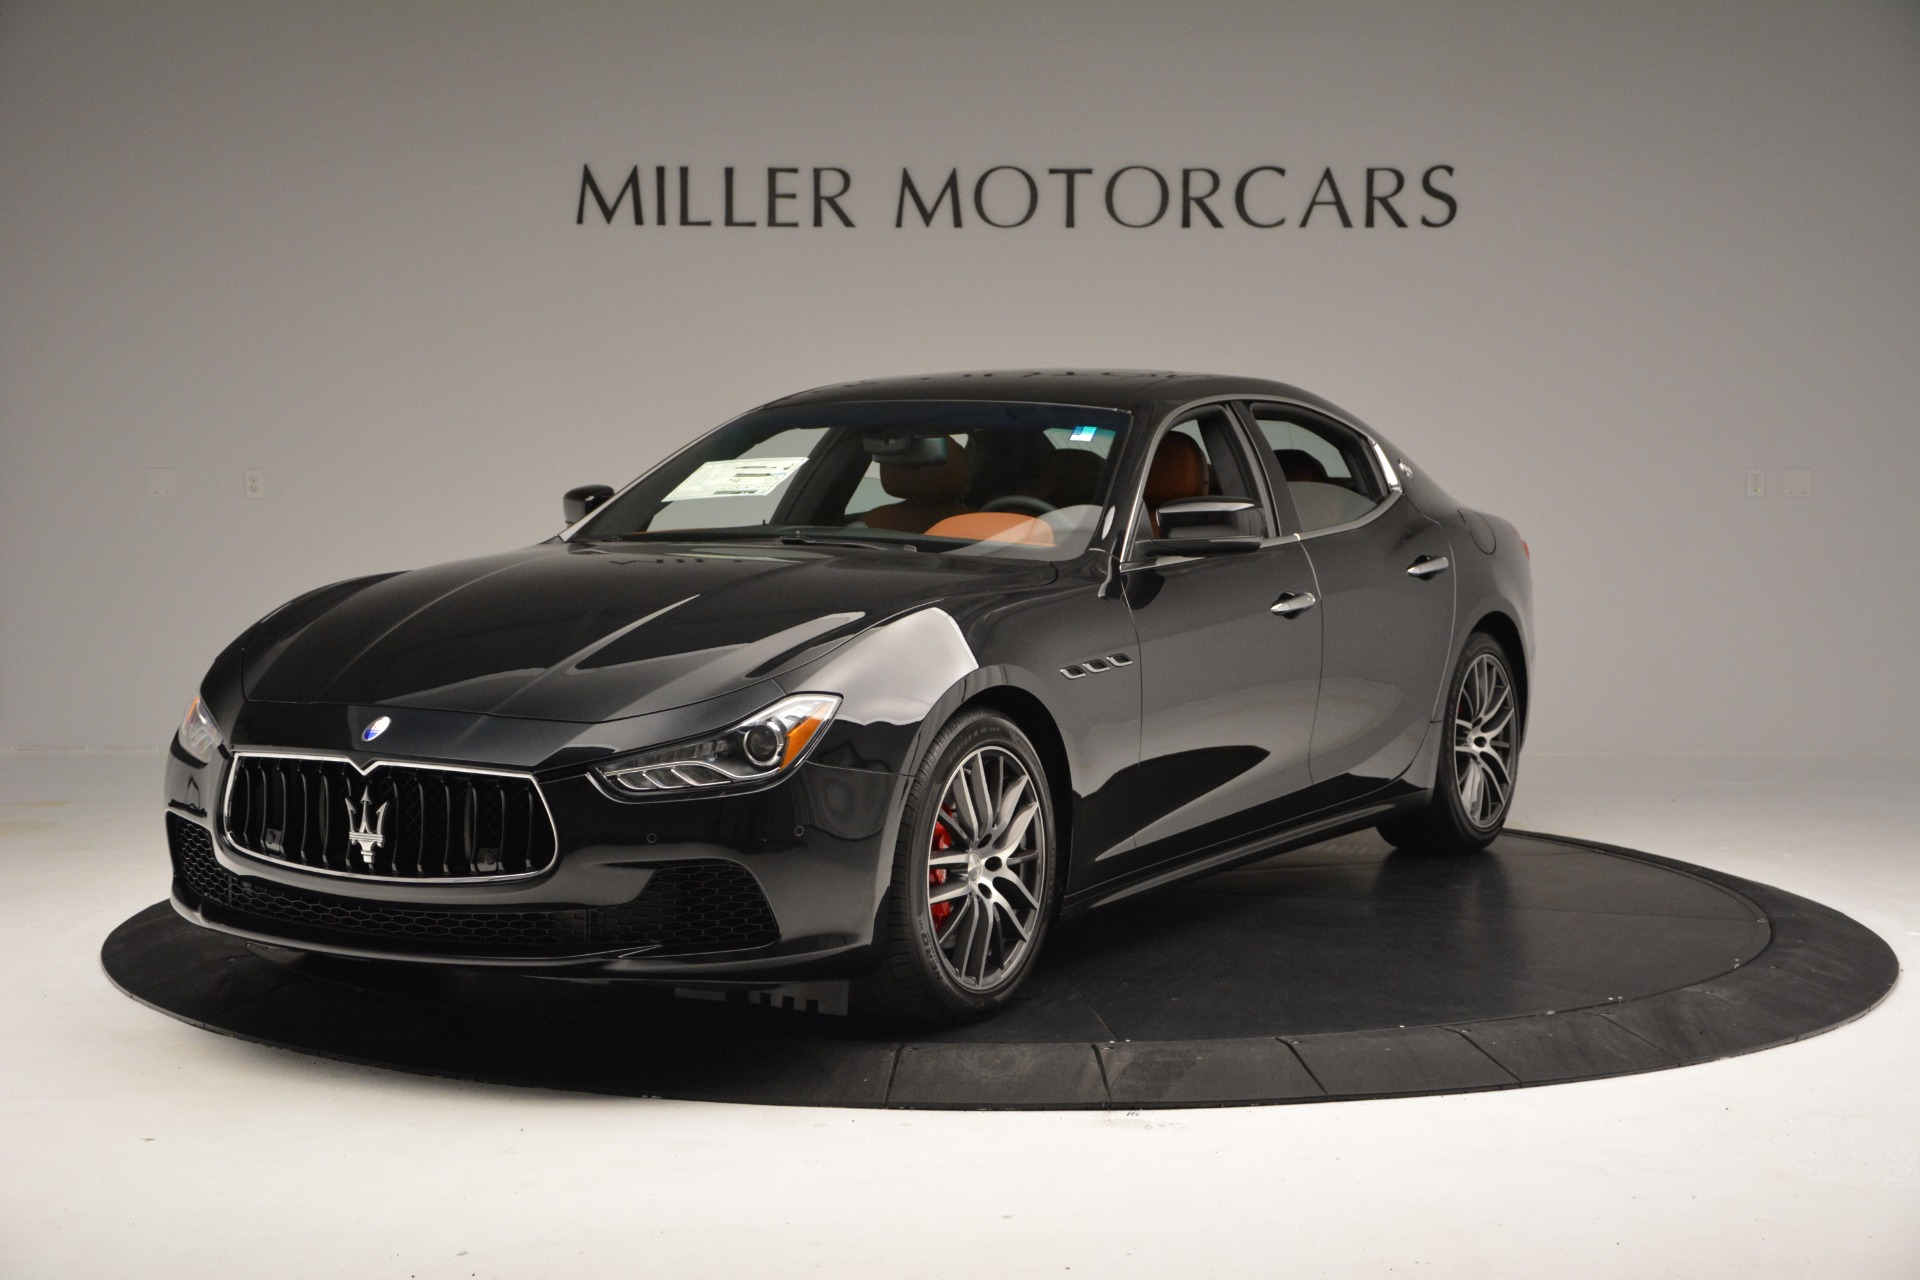 New 2017 Maserati Ghibli SQ4 S Q4 For Sale In Greenwich, CT 1085_main